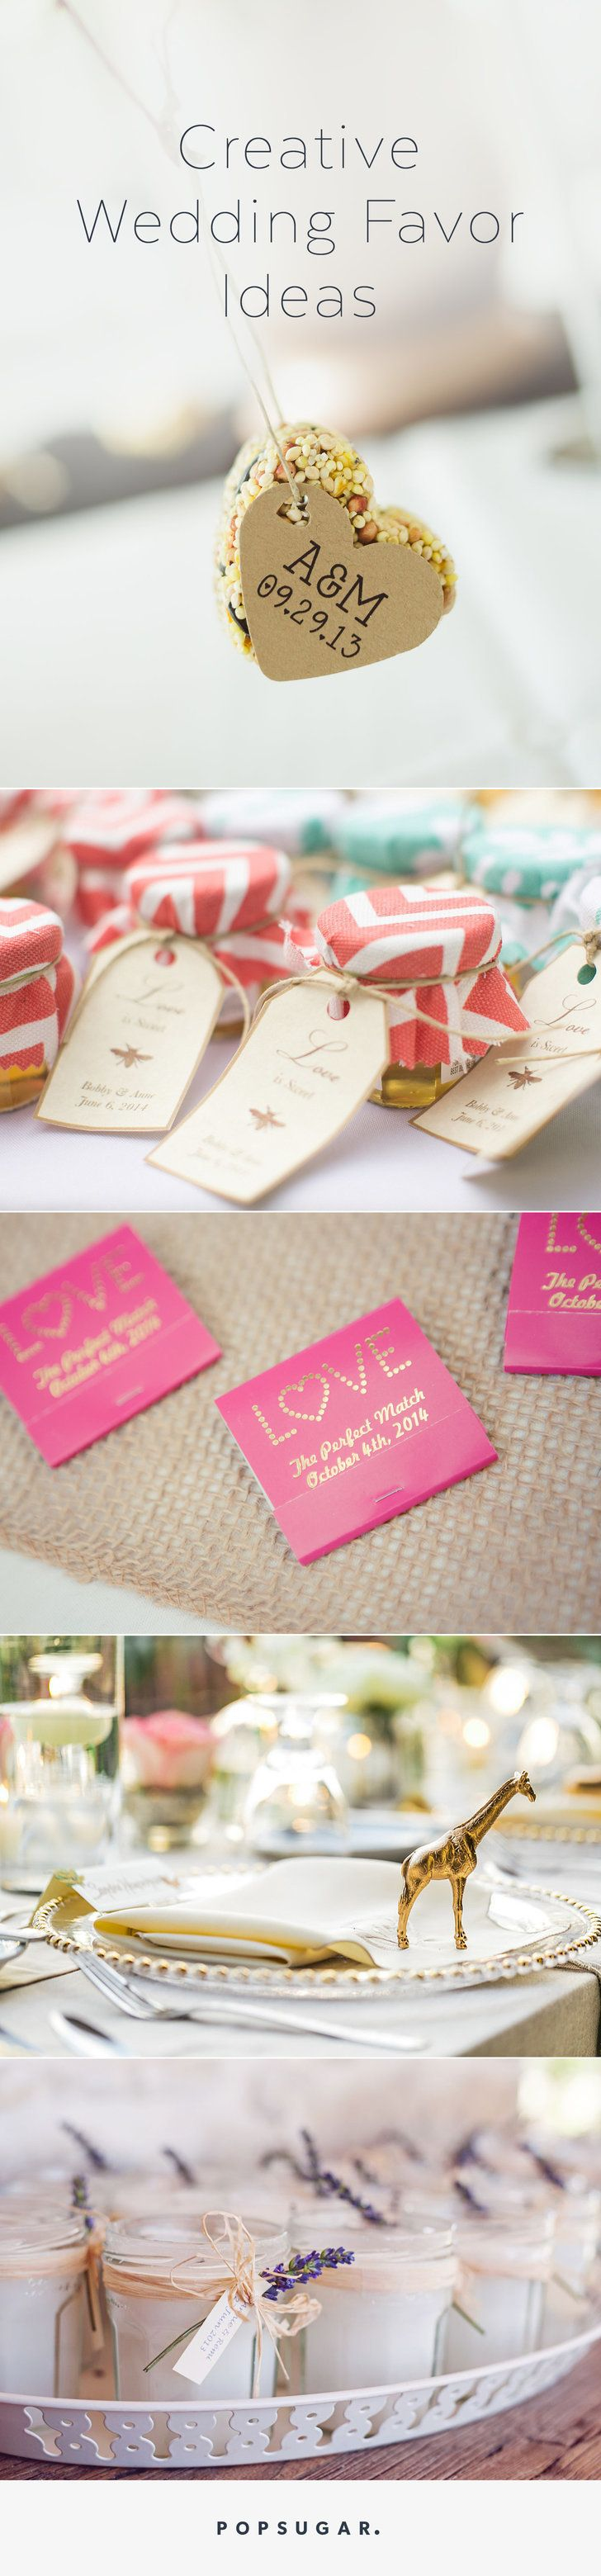 48 Creative, Fun, and Personalized Wedding Favor Ideas | Favors ...